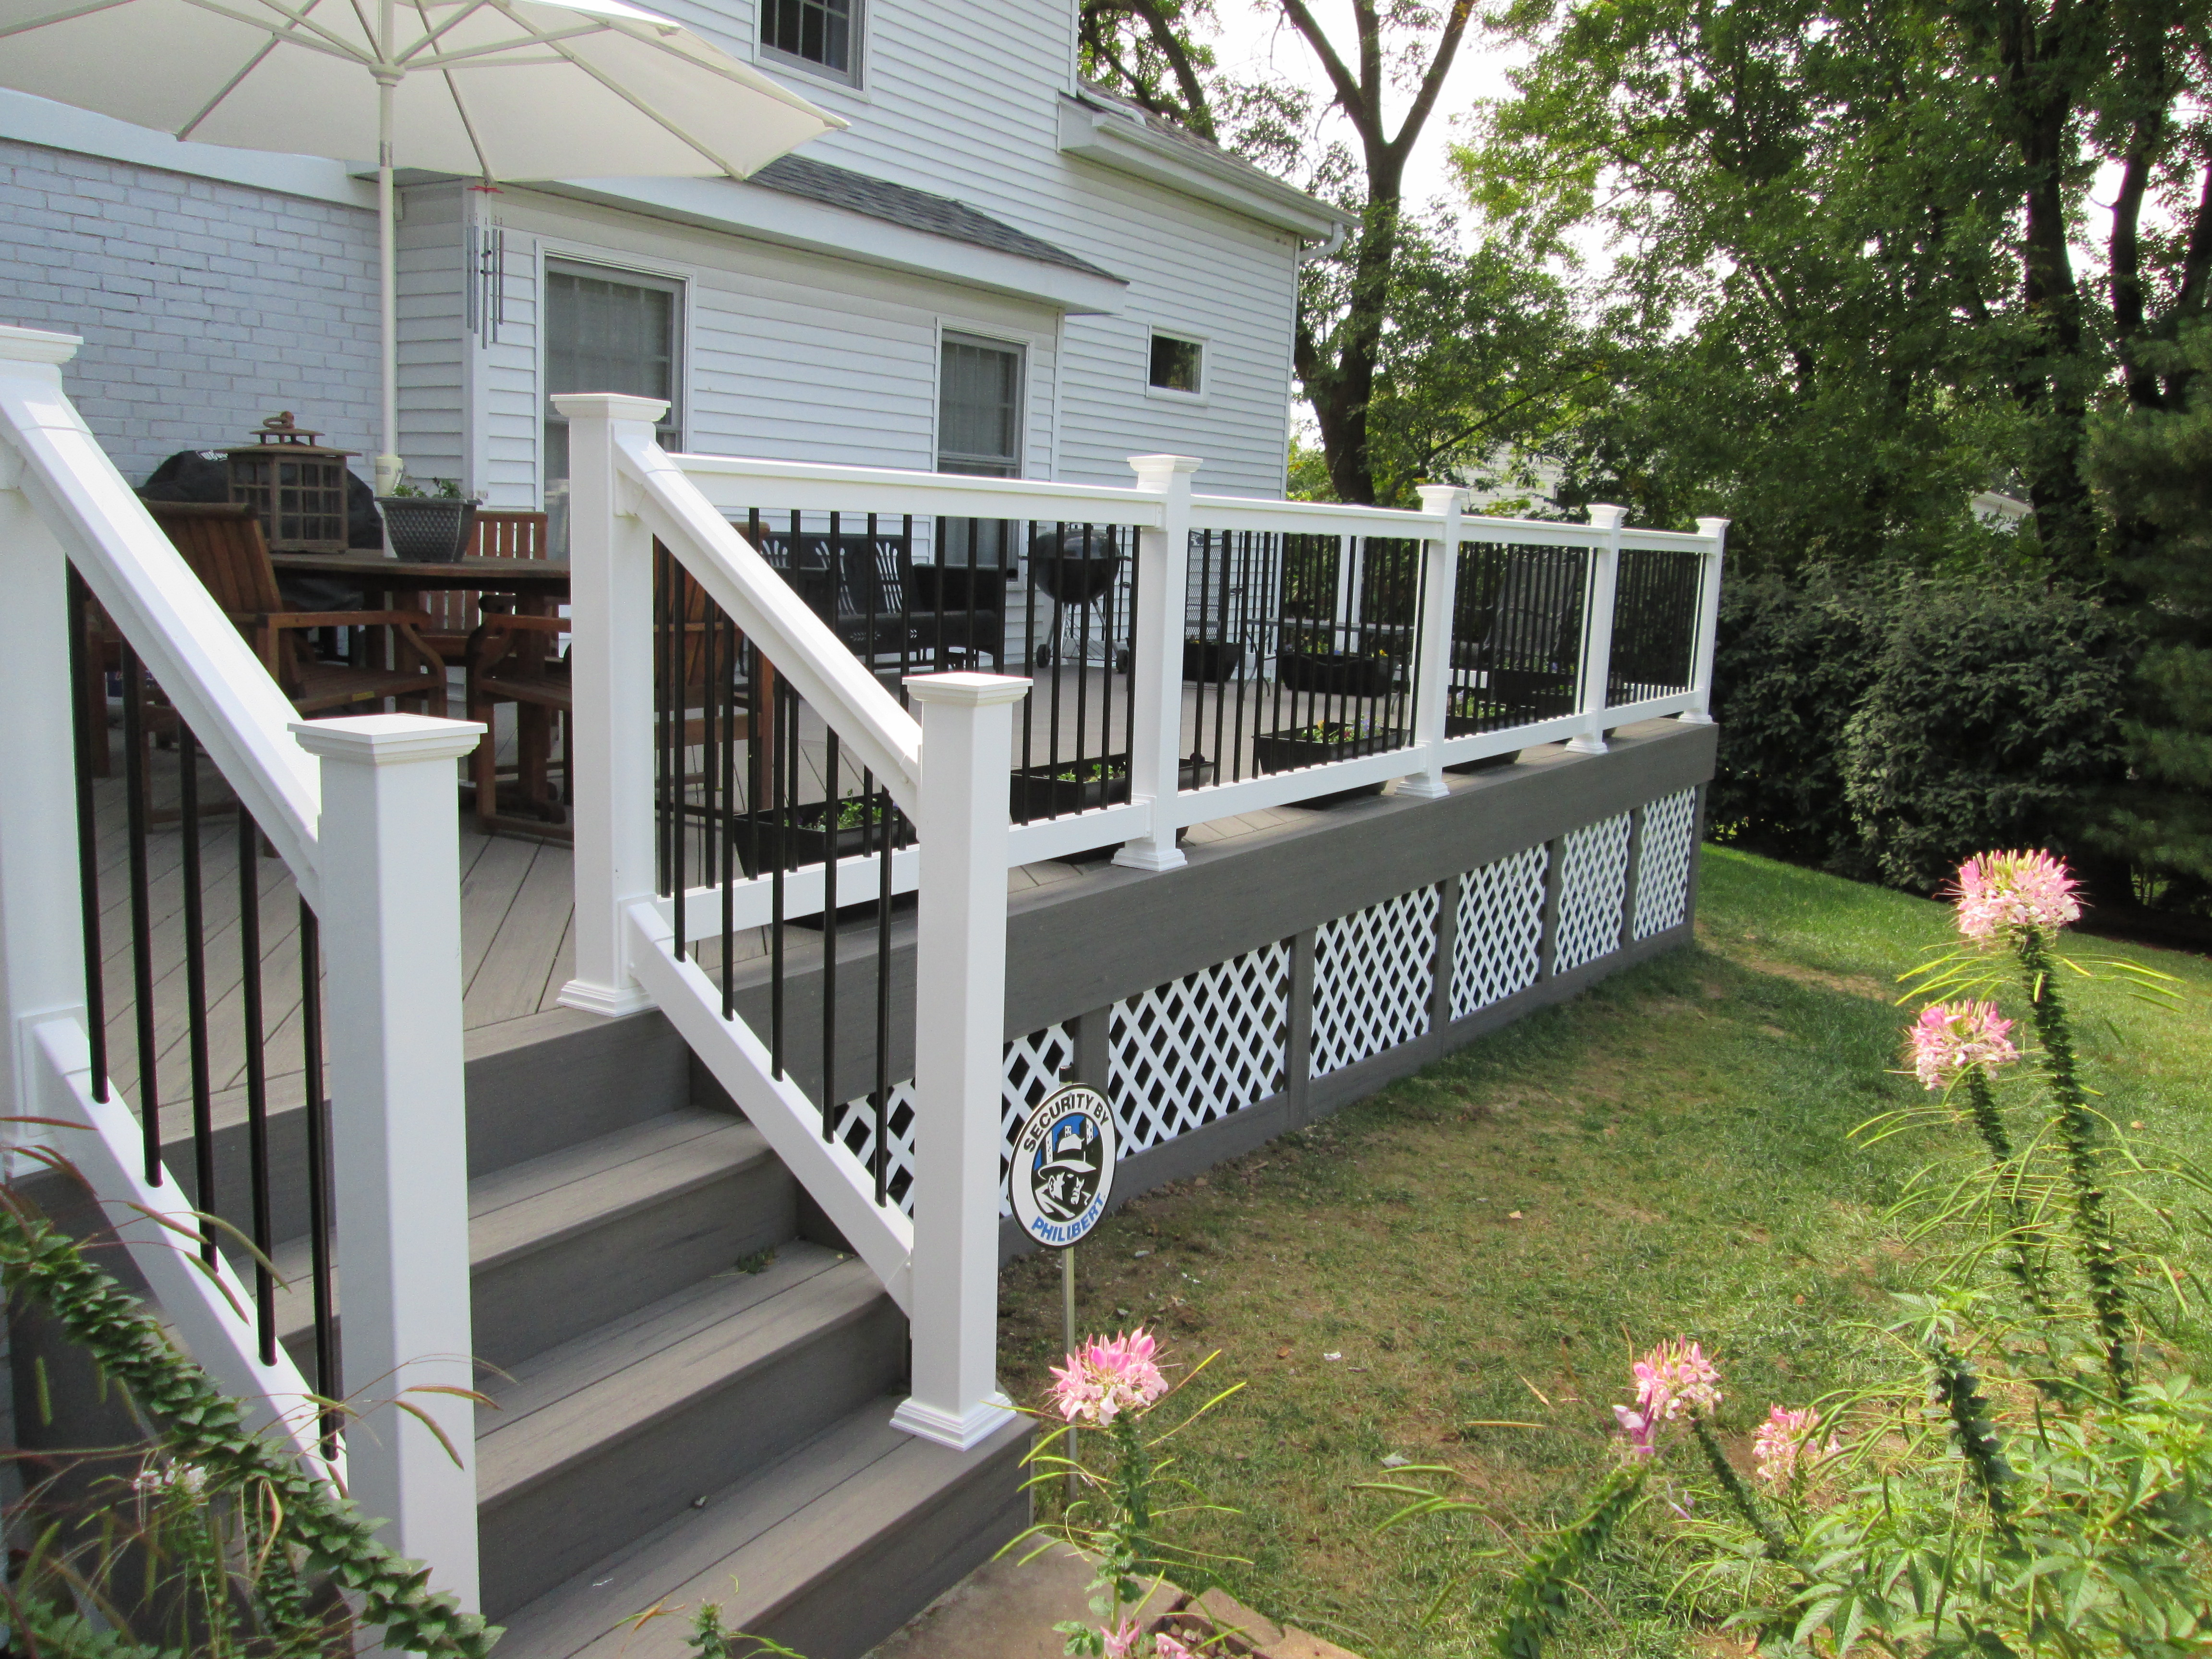 Choosing A Color Scheme For Your Deck St Louis Decks Screened throughout proportions 4608 X 3456